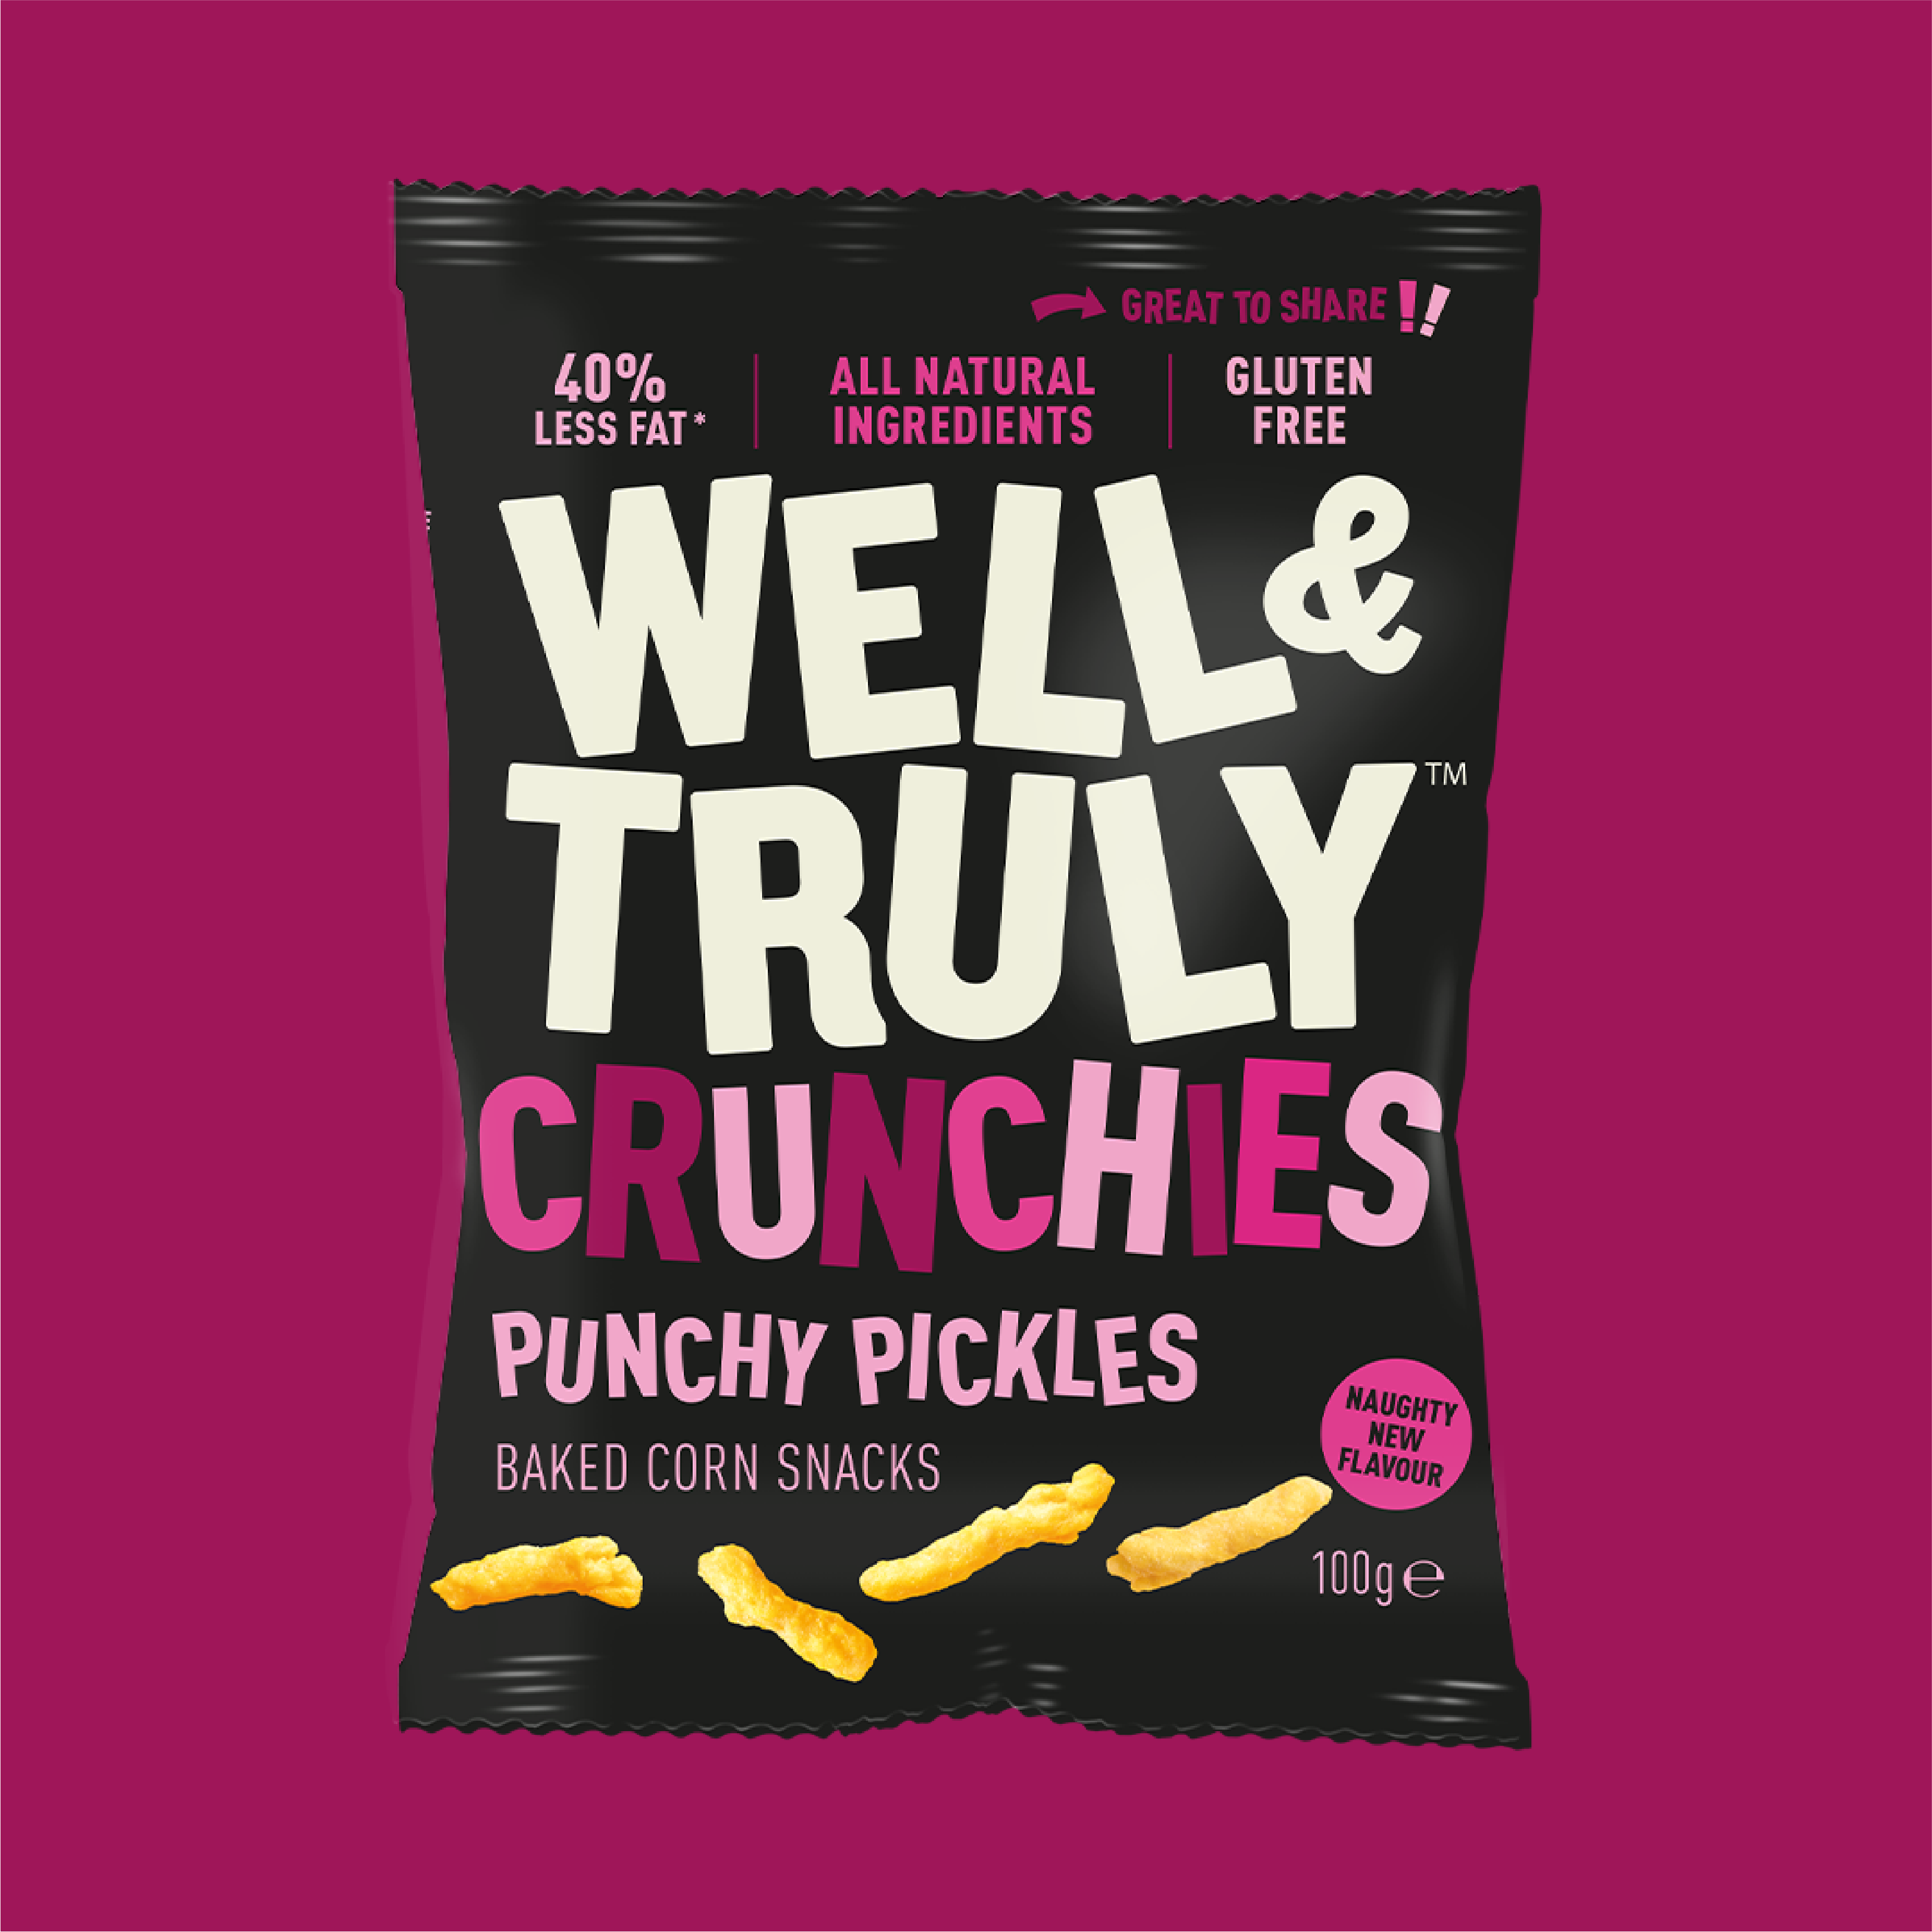 Well & Truly Flavour: Punchy Pickle